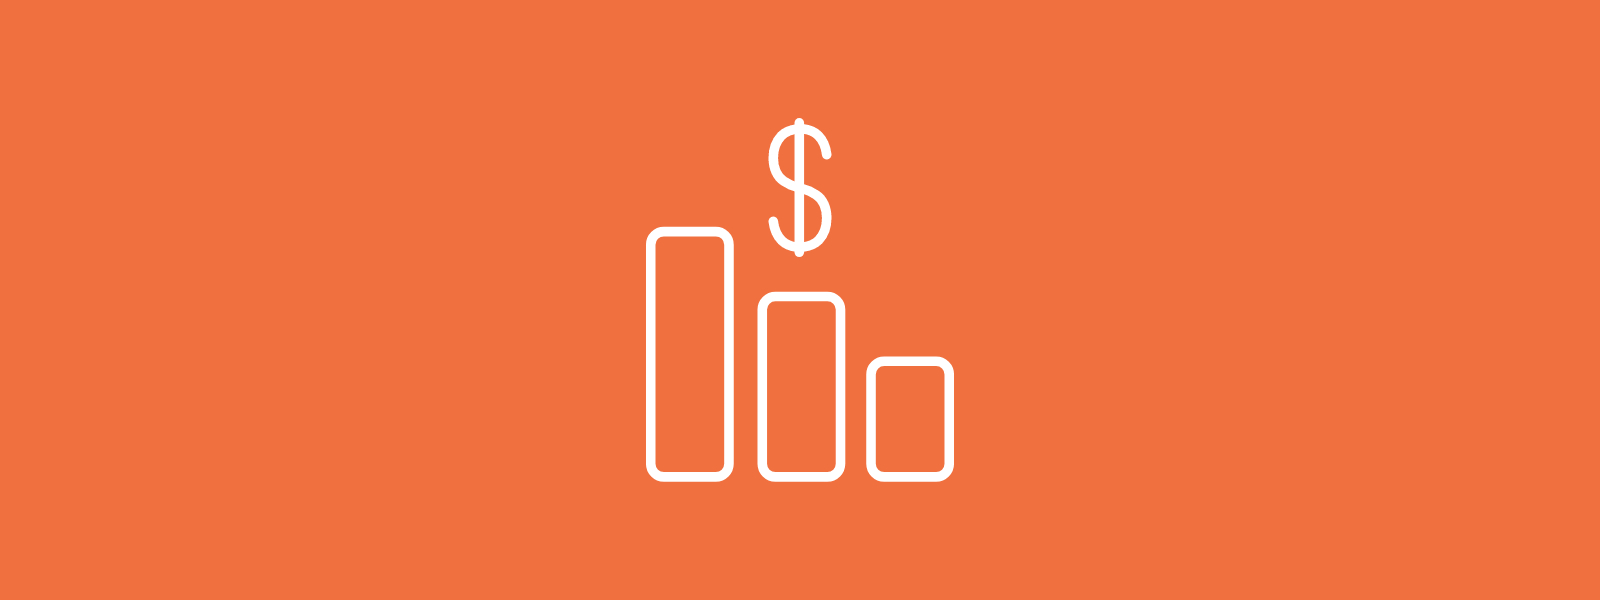 Icon background of financial graph